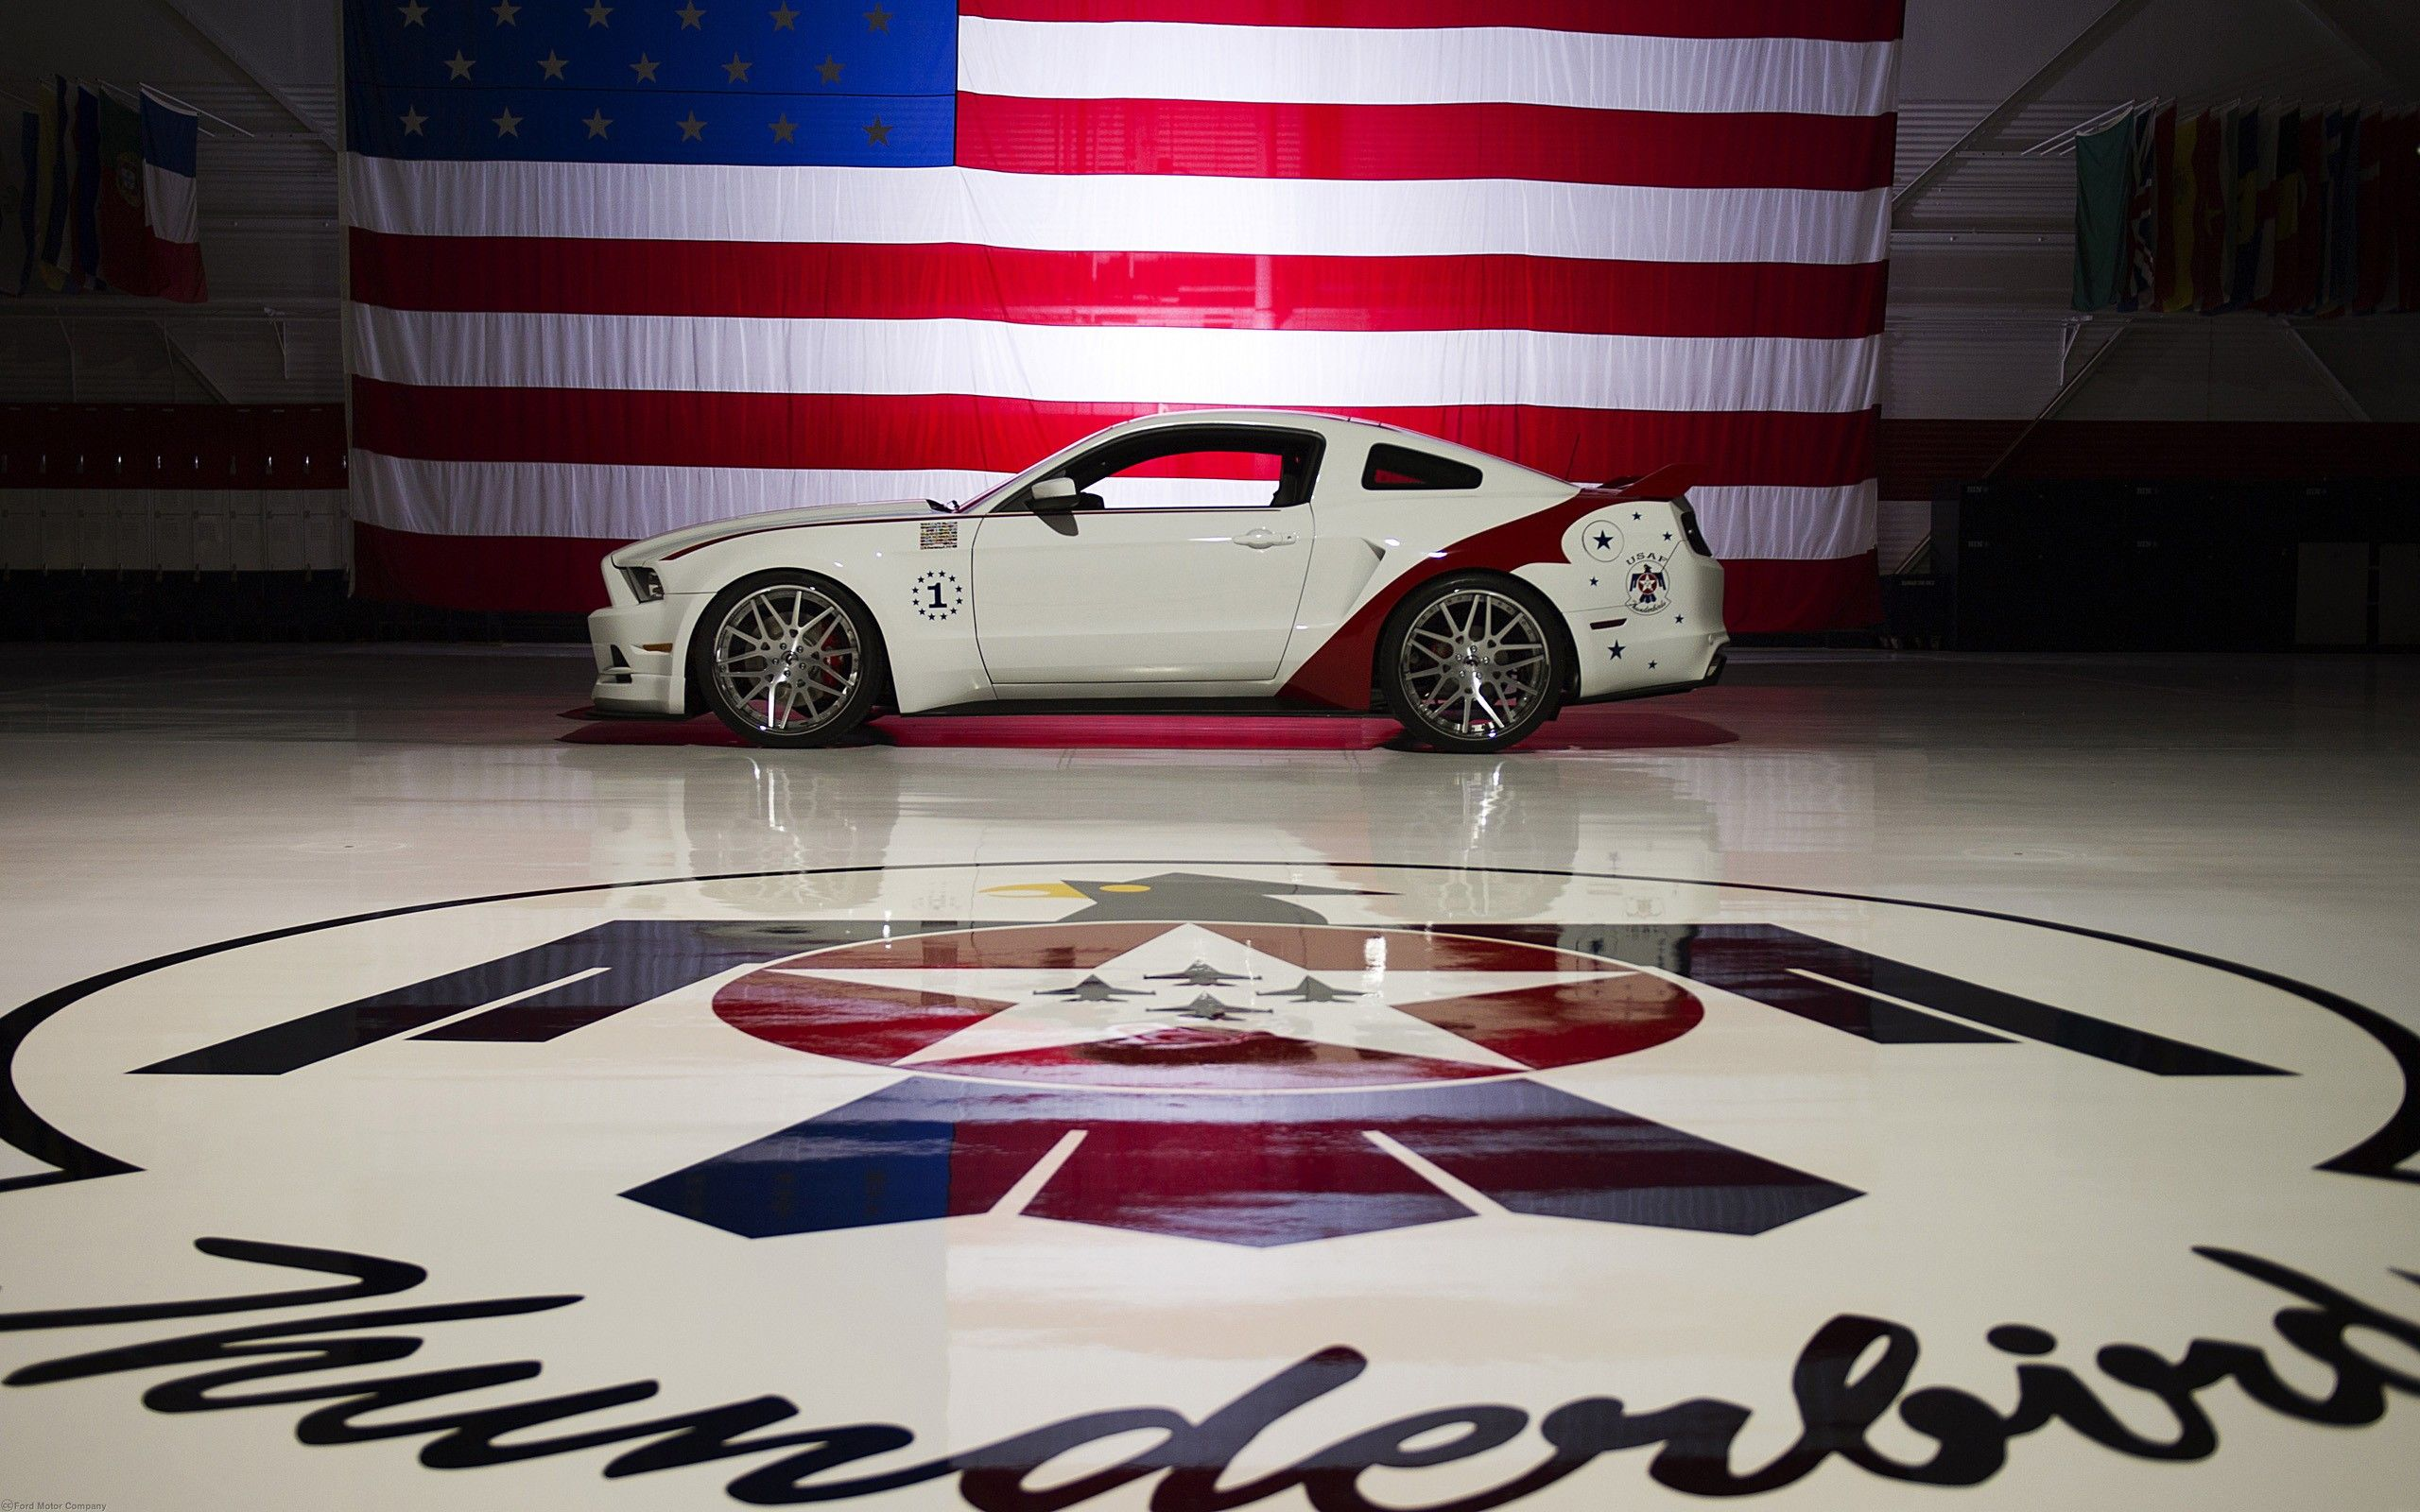 2560x1600 Ford Mustang GT, American Flag widescreen wallpaper | Wide ...